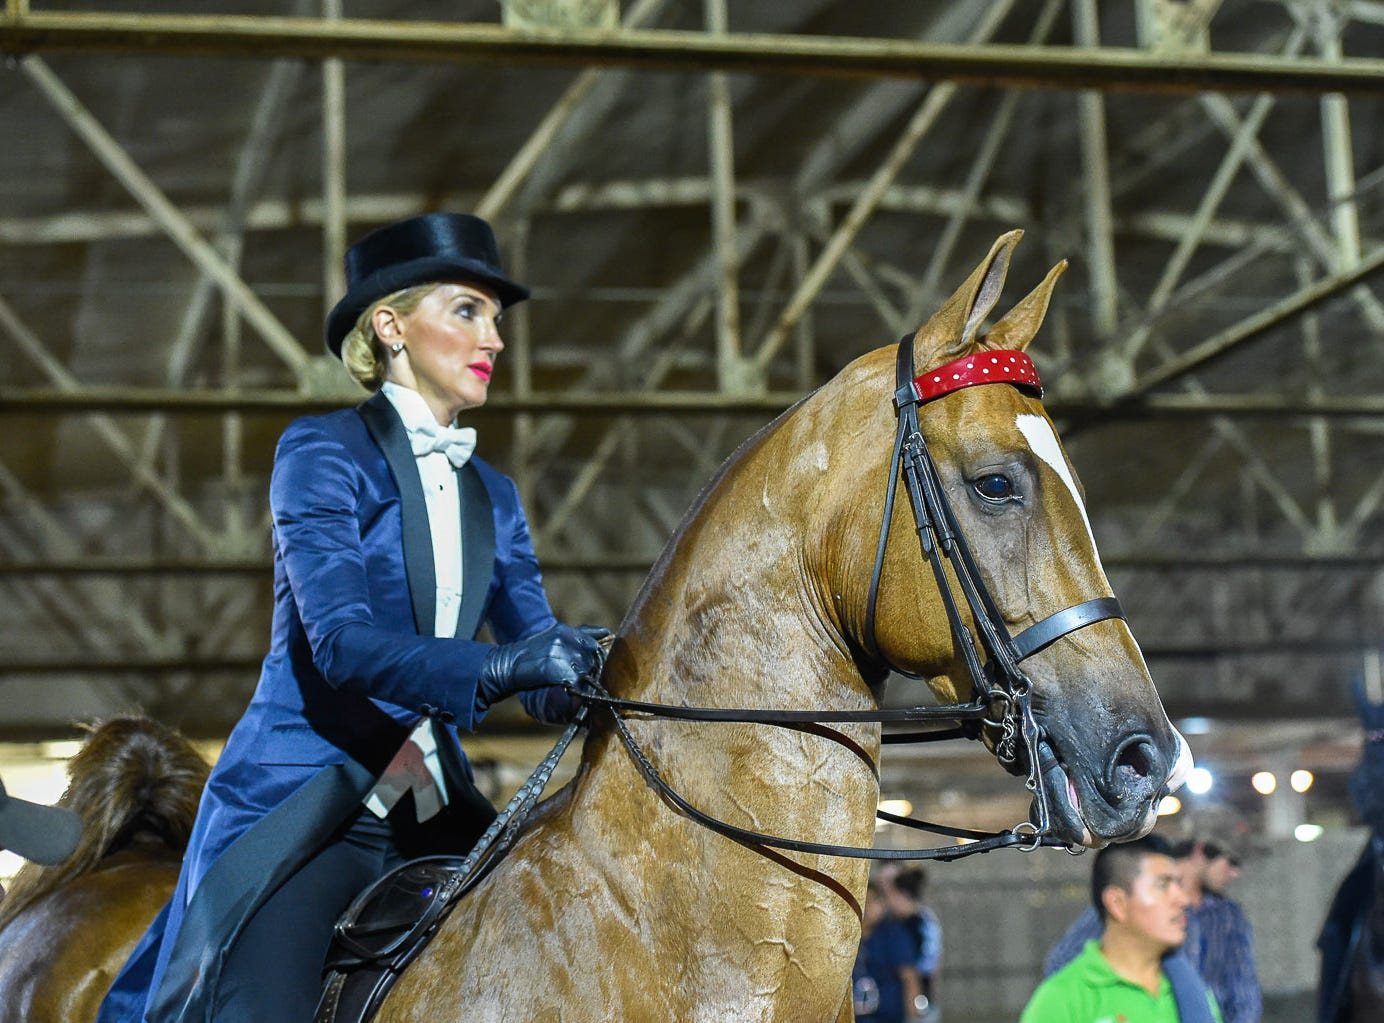 Its a World Champion Tile and a Triple Crown year for Mary Jane Glasscock Kirkpatrick. Her family's race horse Justify earlier this year and now her Saddlebred, Macadamia wins the 3 GAITED LADIES AMATEUR OVER 15.2 class. 